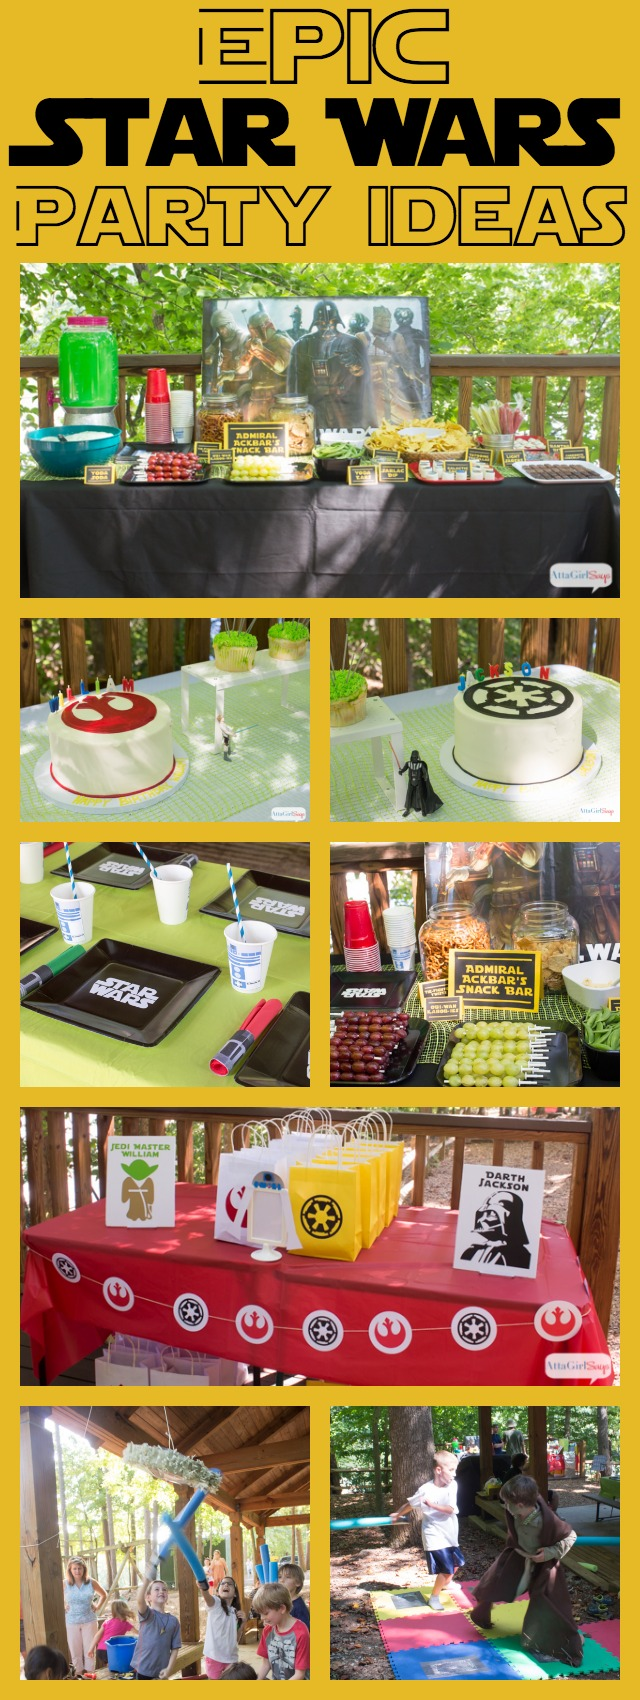 Planning A Star Wars Birthday Party Check Out These Epic Ideas